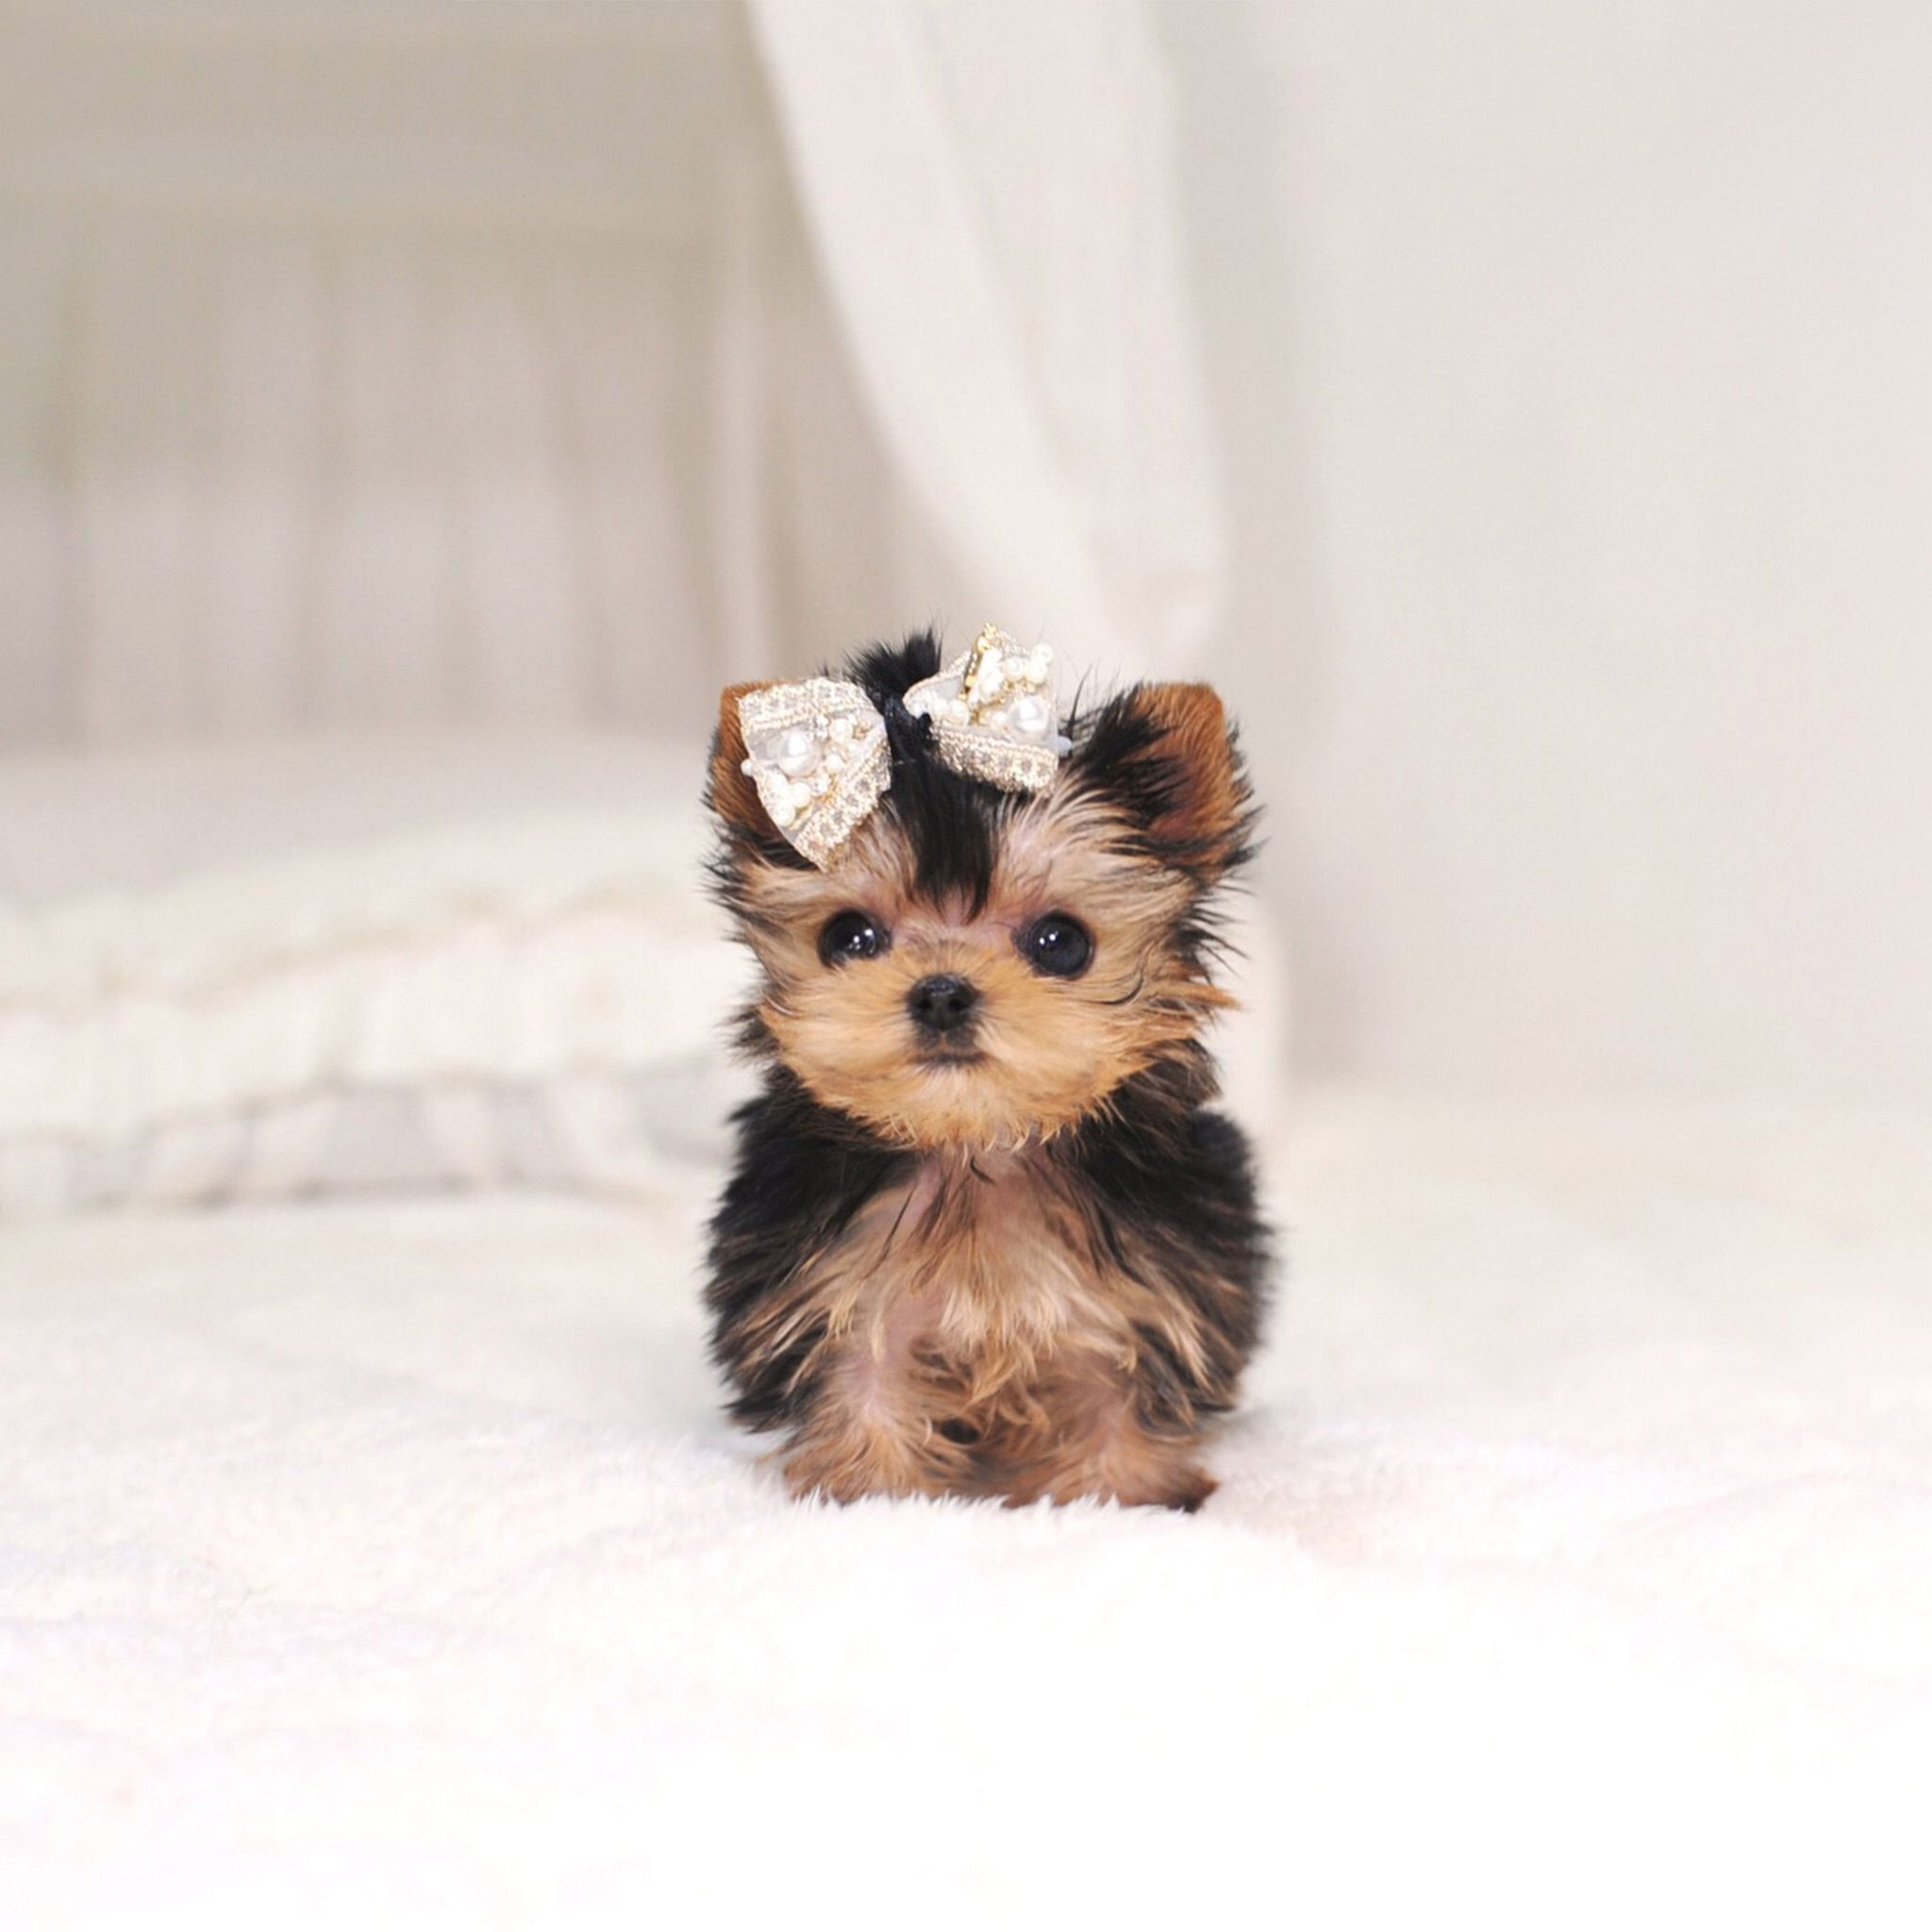 Pin By Ava Jenkins On Cute Animals Cute Puppy Wallpaper